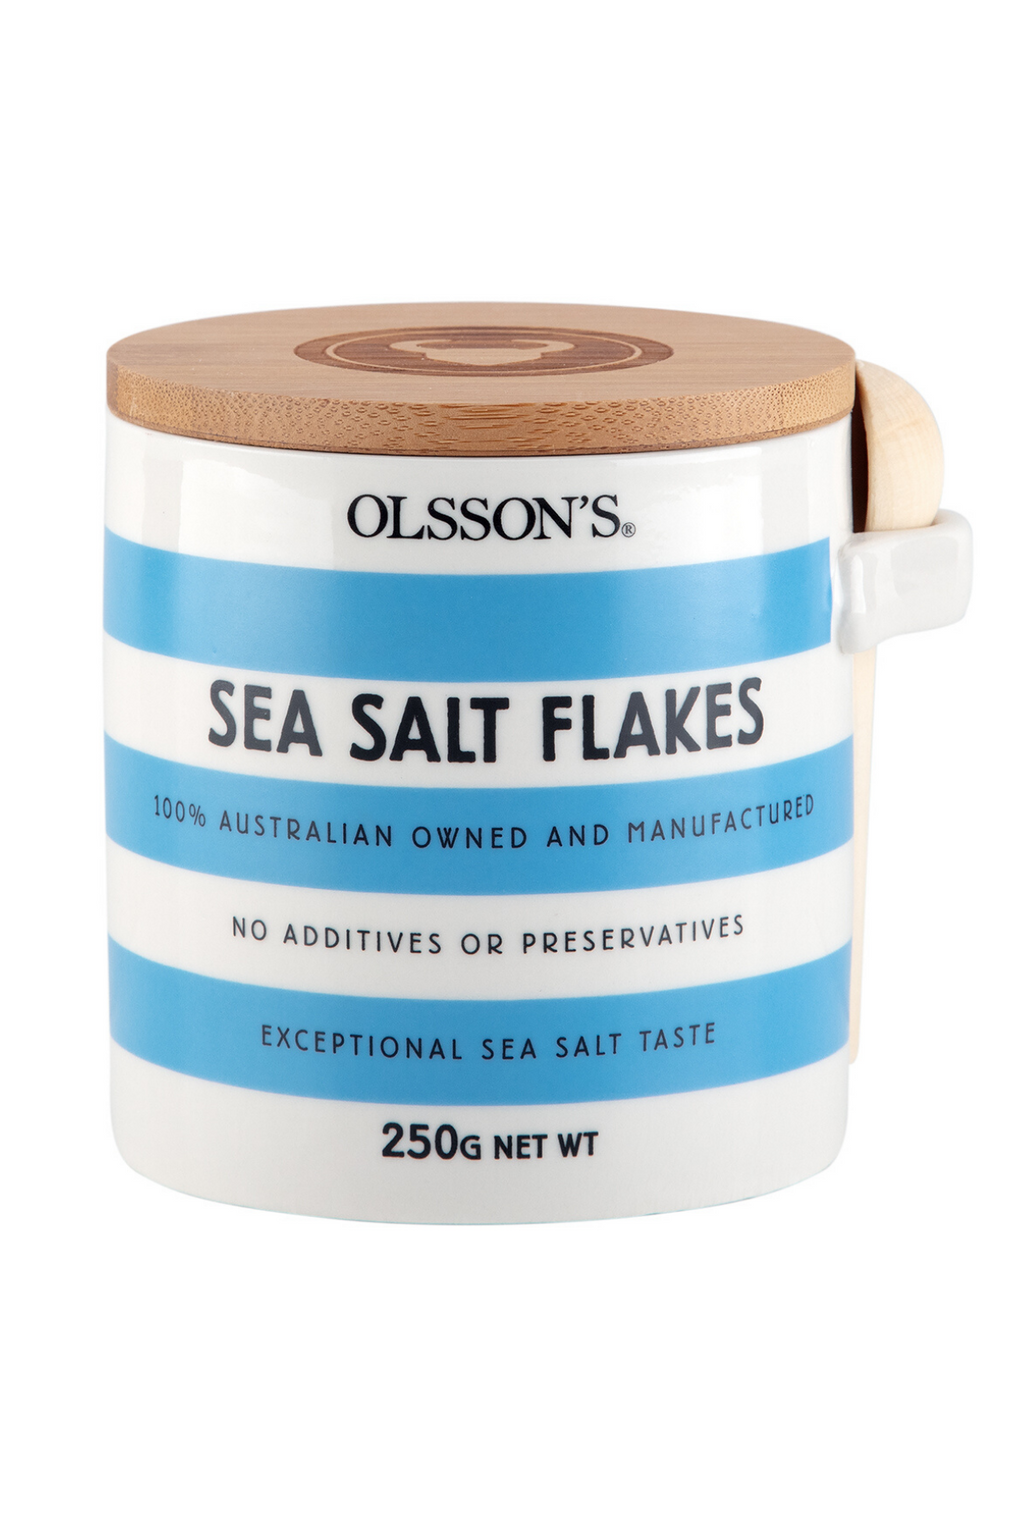 Olsson's Sea Salt Flakes Stoneware Jar 250g